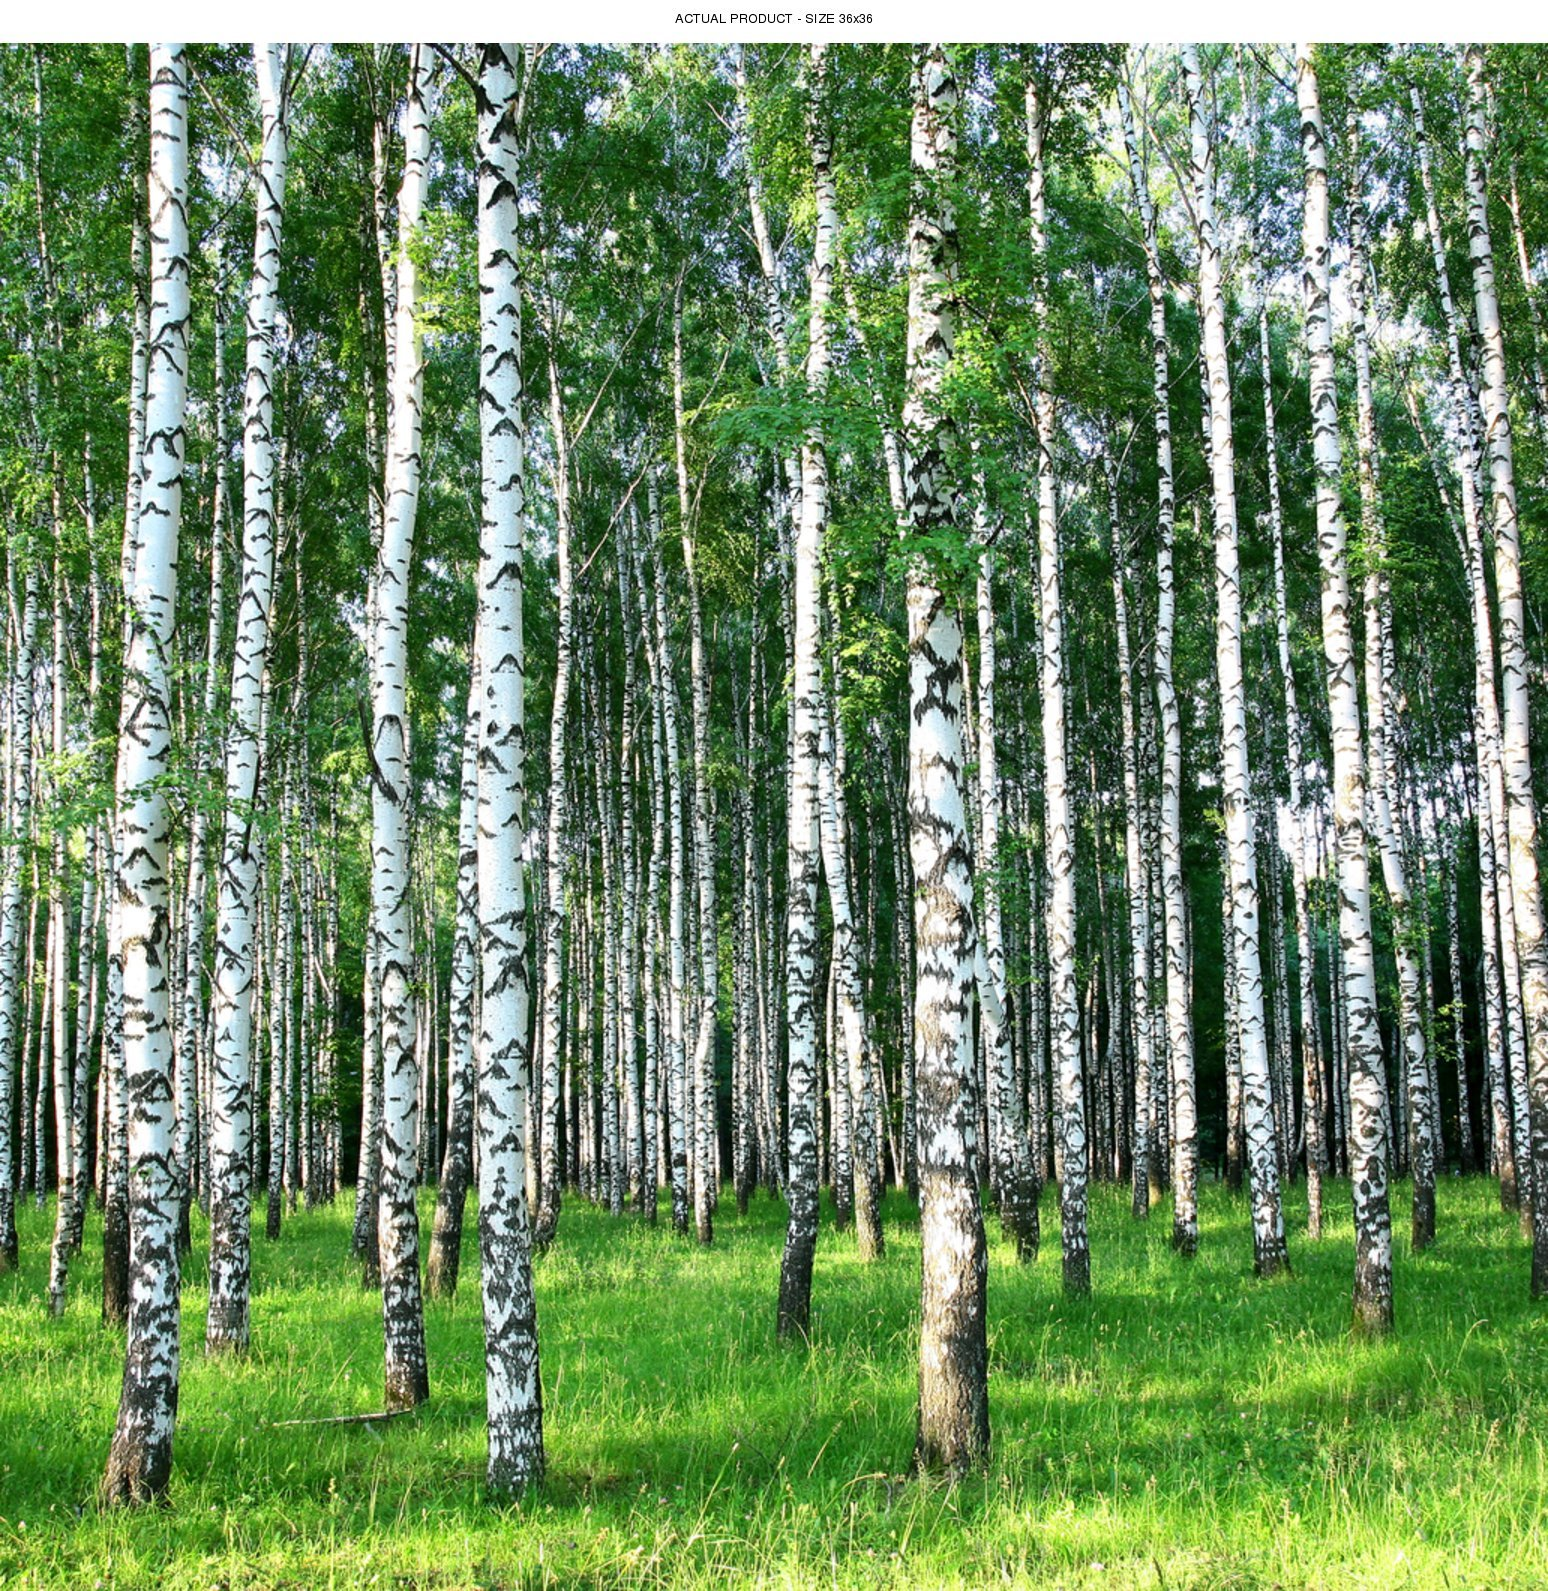 Windowpix 36x36 Inch Decorative Static Cling Window Film Sunlit Forest Trees Printed on Clear for Window Glass Panels. UV Protection, Energy Saving.